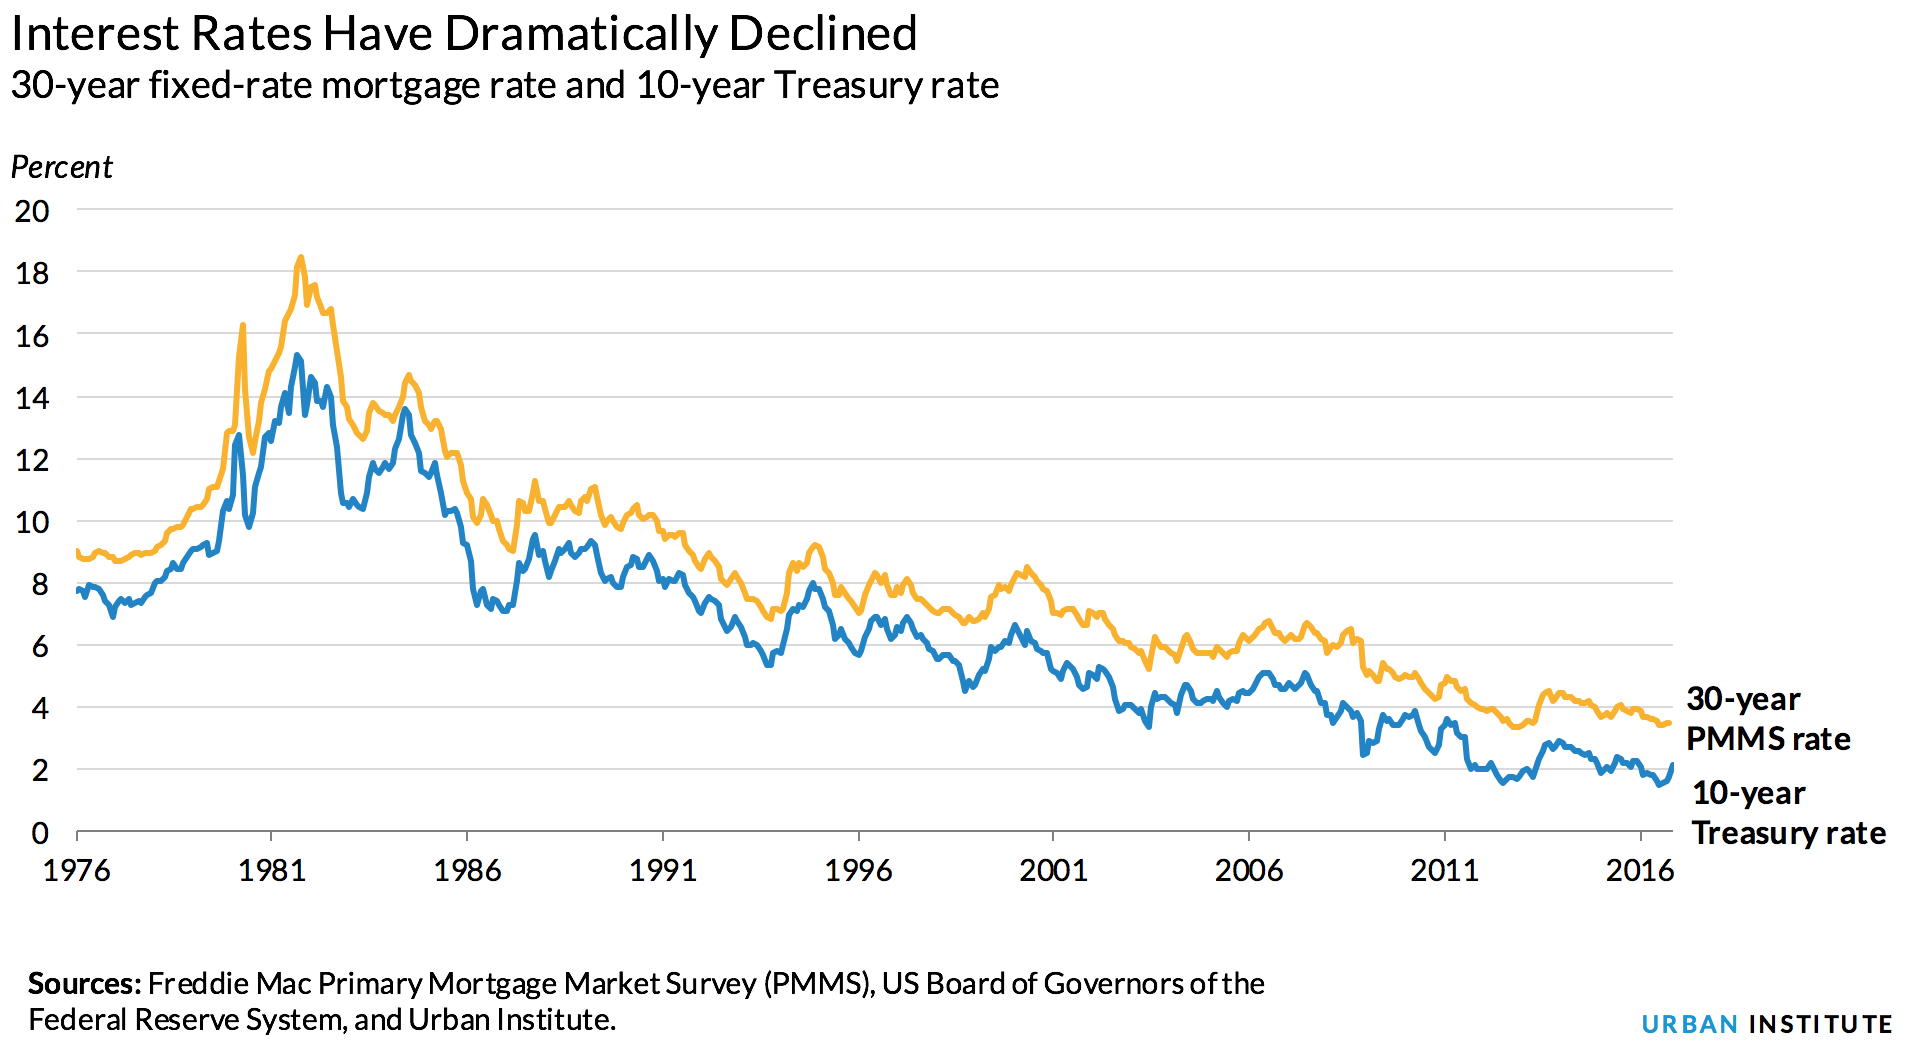 Interest rates have dramatically declined